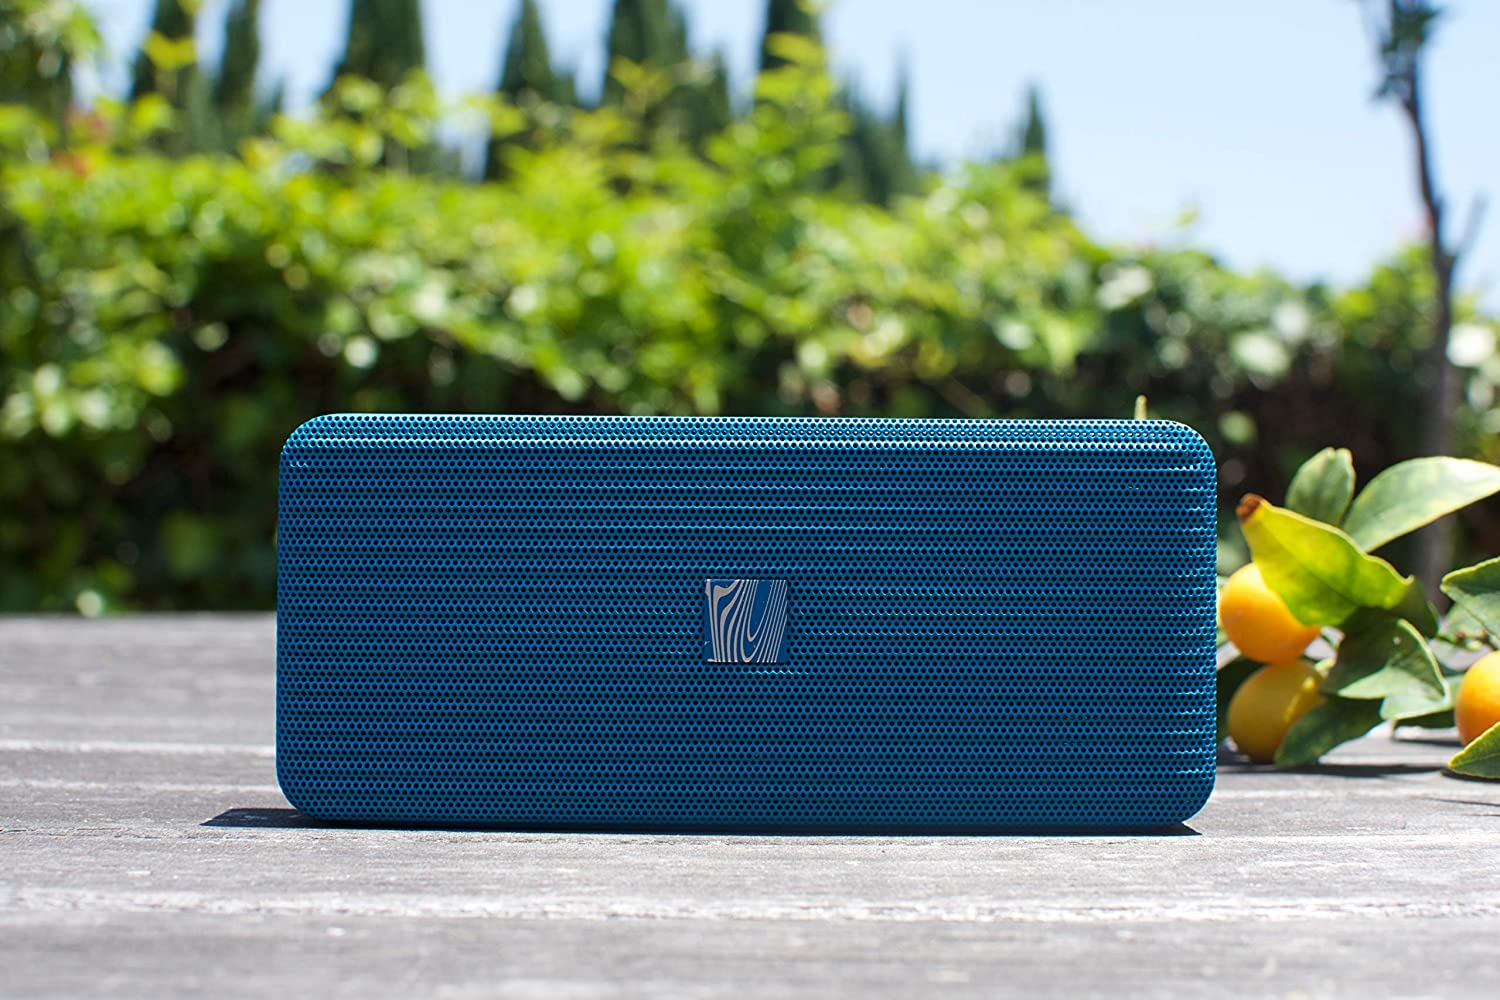 Blue Soundfreaq Pocket Kick Wireless Bluetooth Portable Speaker and Speakerphone